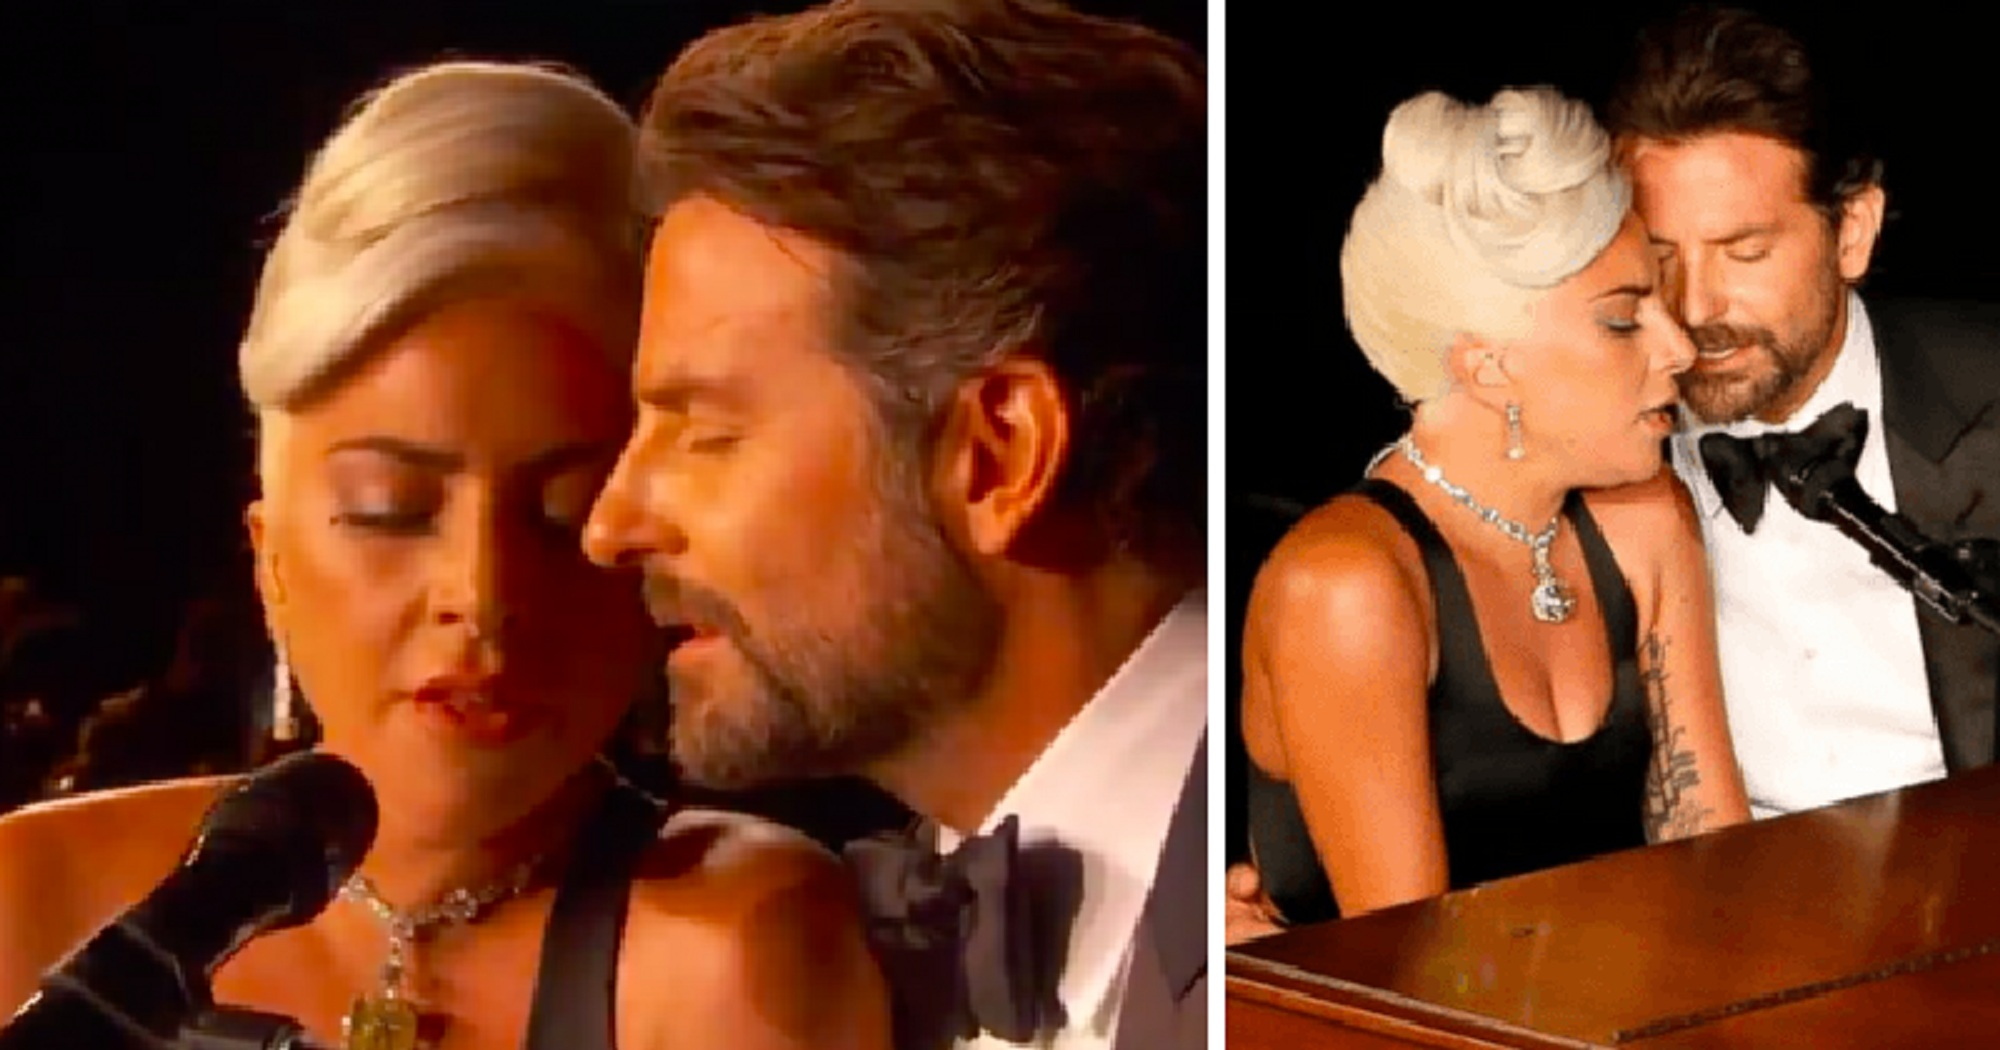 Watch: Lady Gaga and Bradley Cooper Give Passionate Performance at the Oscars